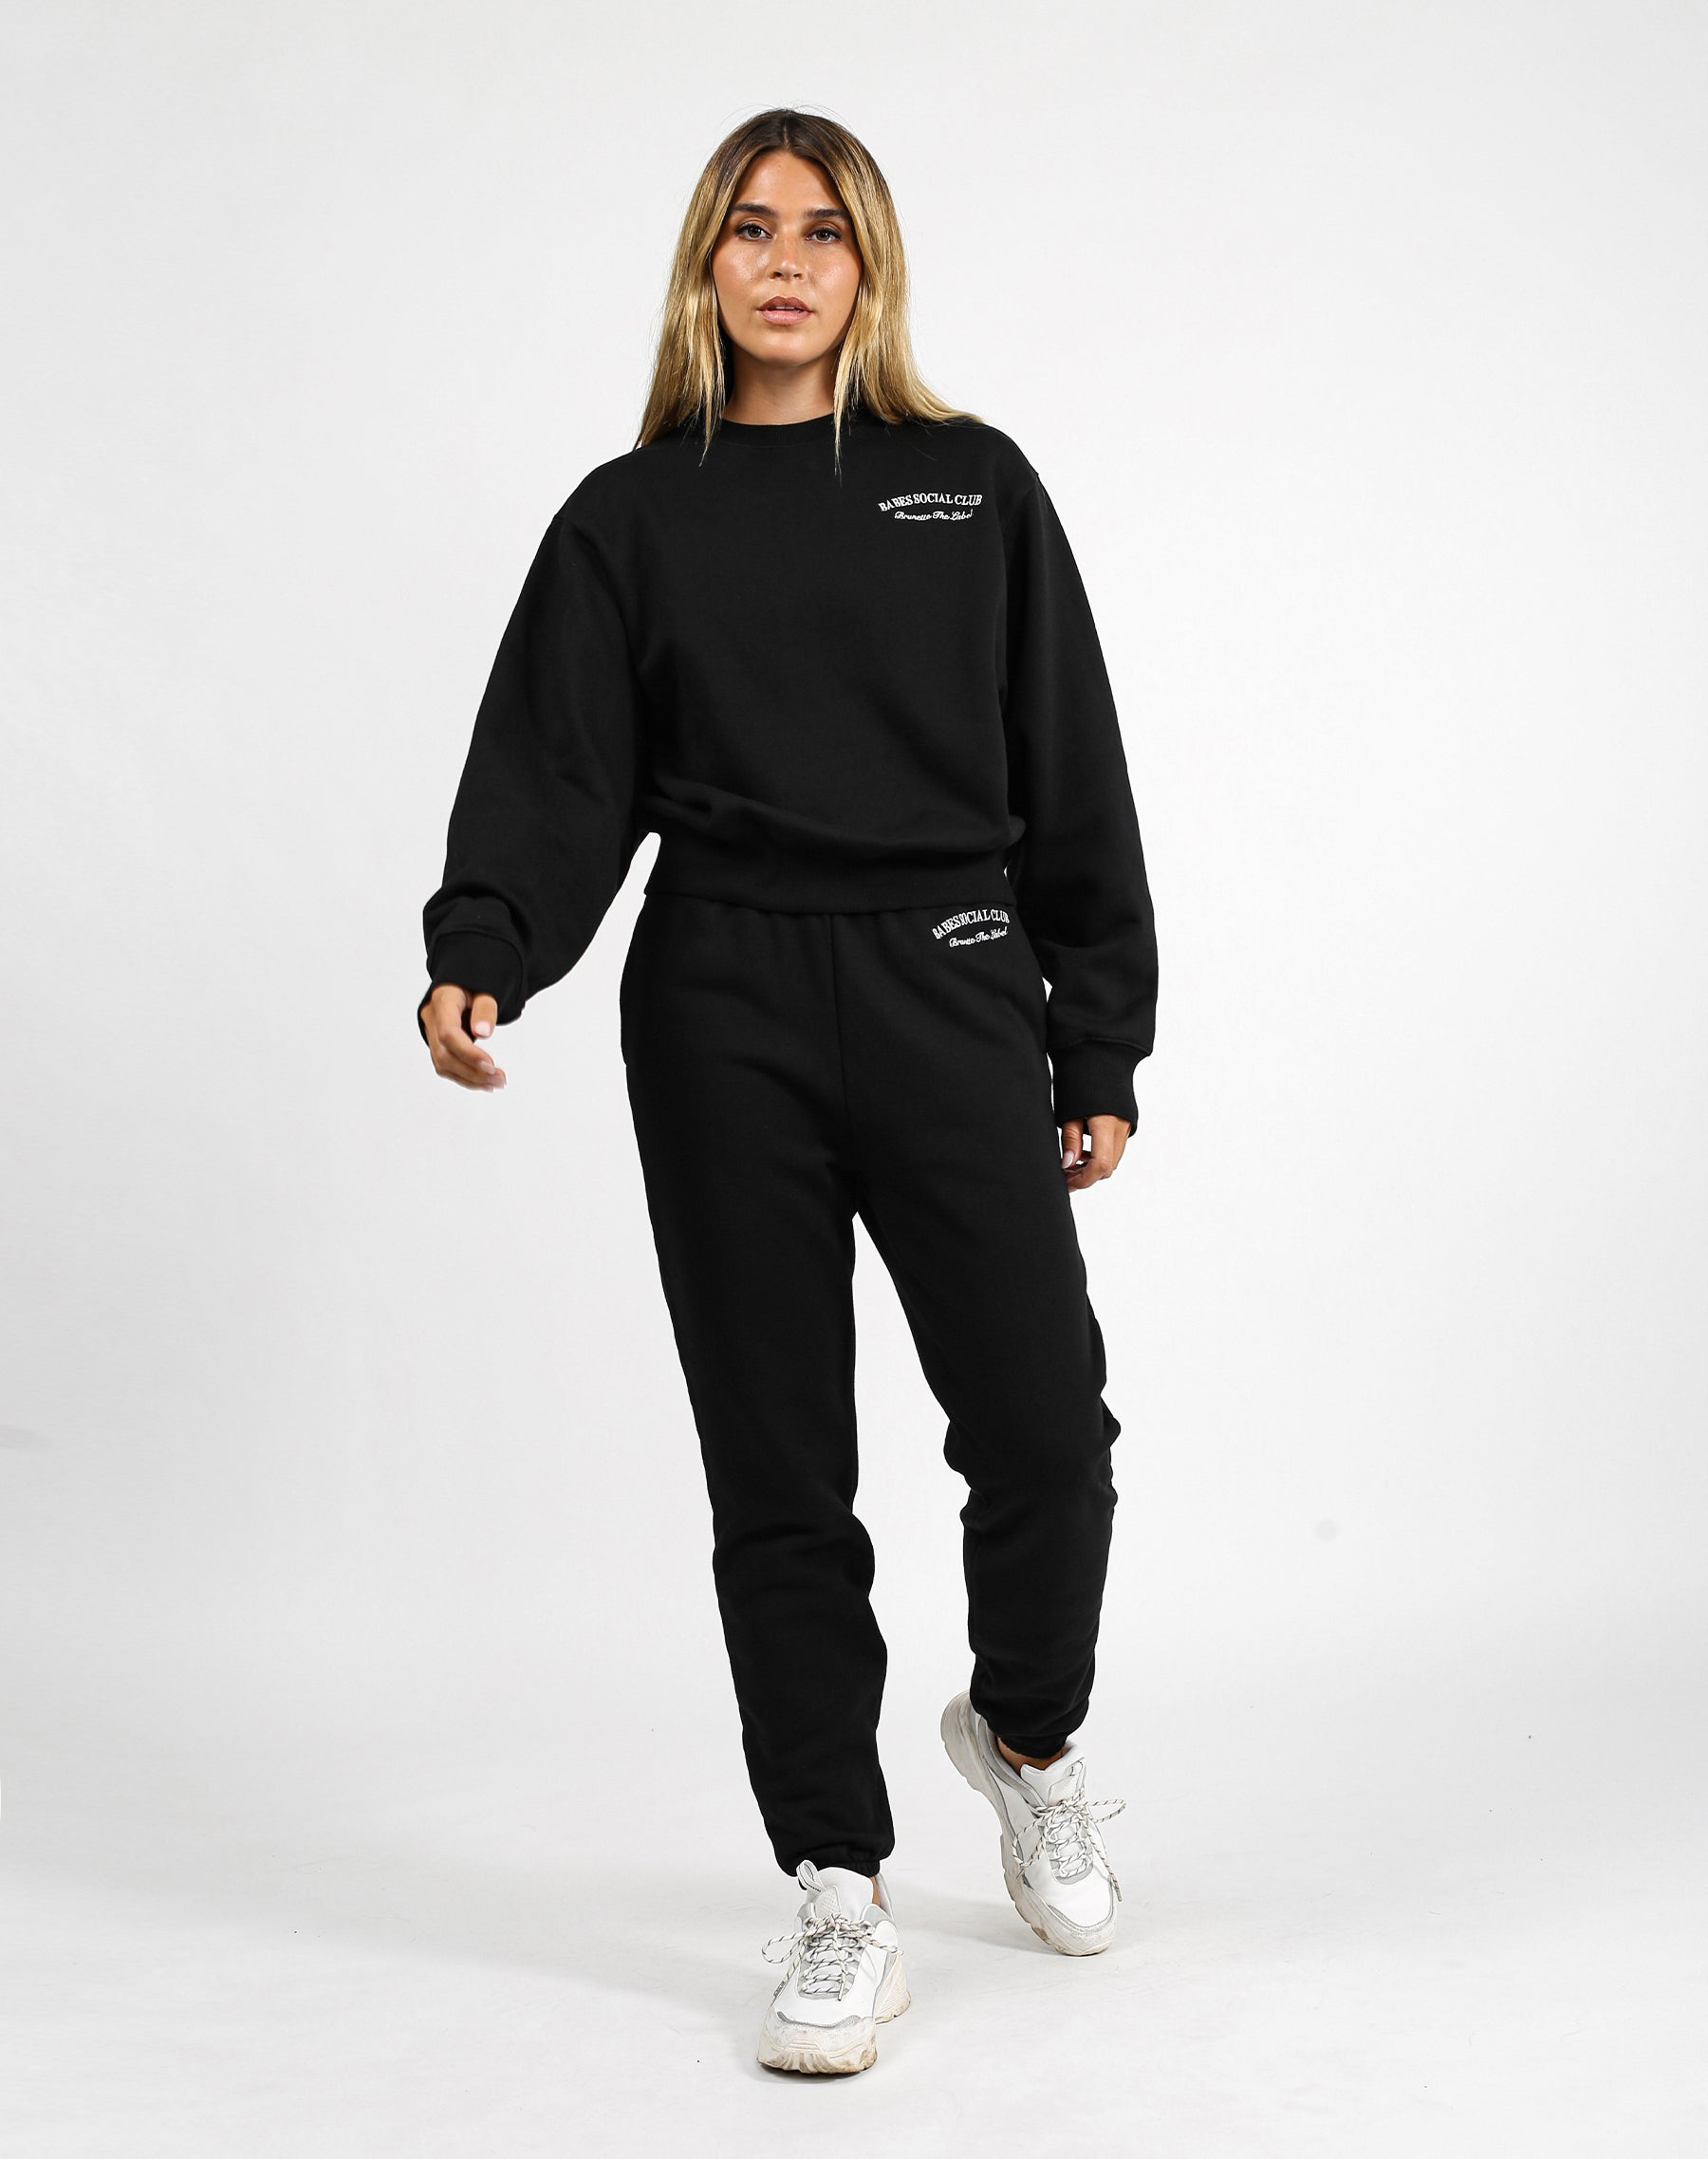 This is a photo of a model wearing the Babes Social Club Best Friend Jogger in Black by Brunette the Label.